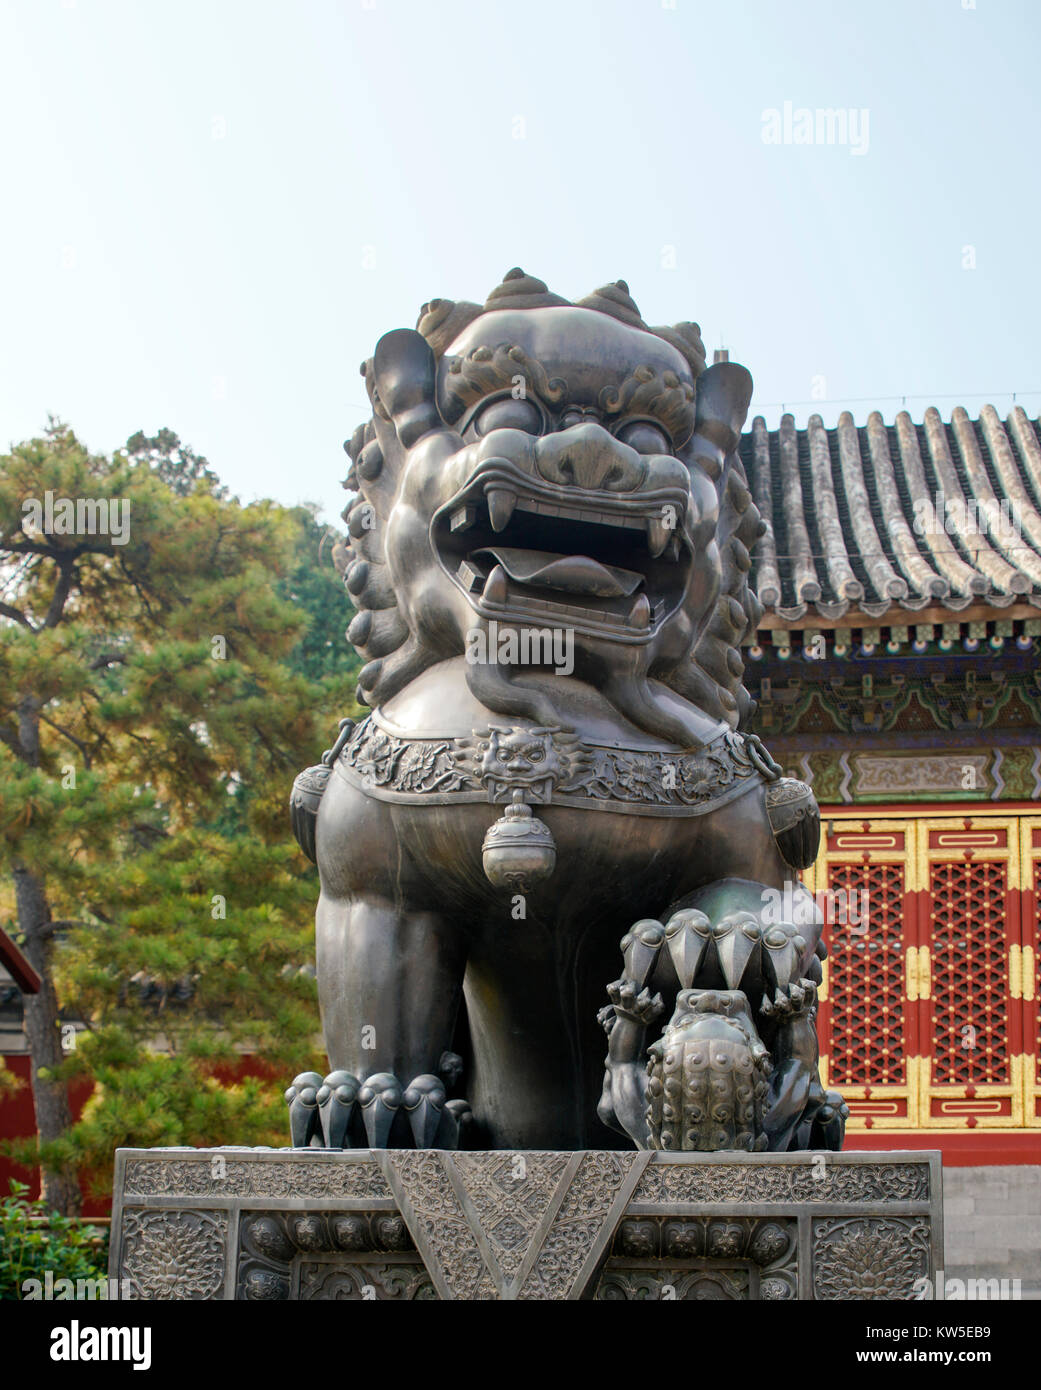 Statue of a Bronze Lion at Summer Palace, Beijing, China - Stock Image